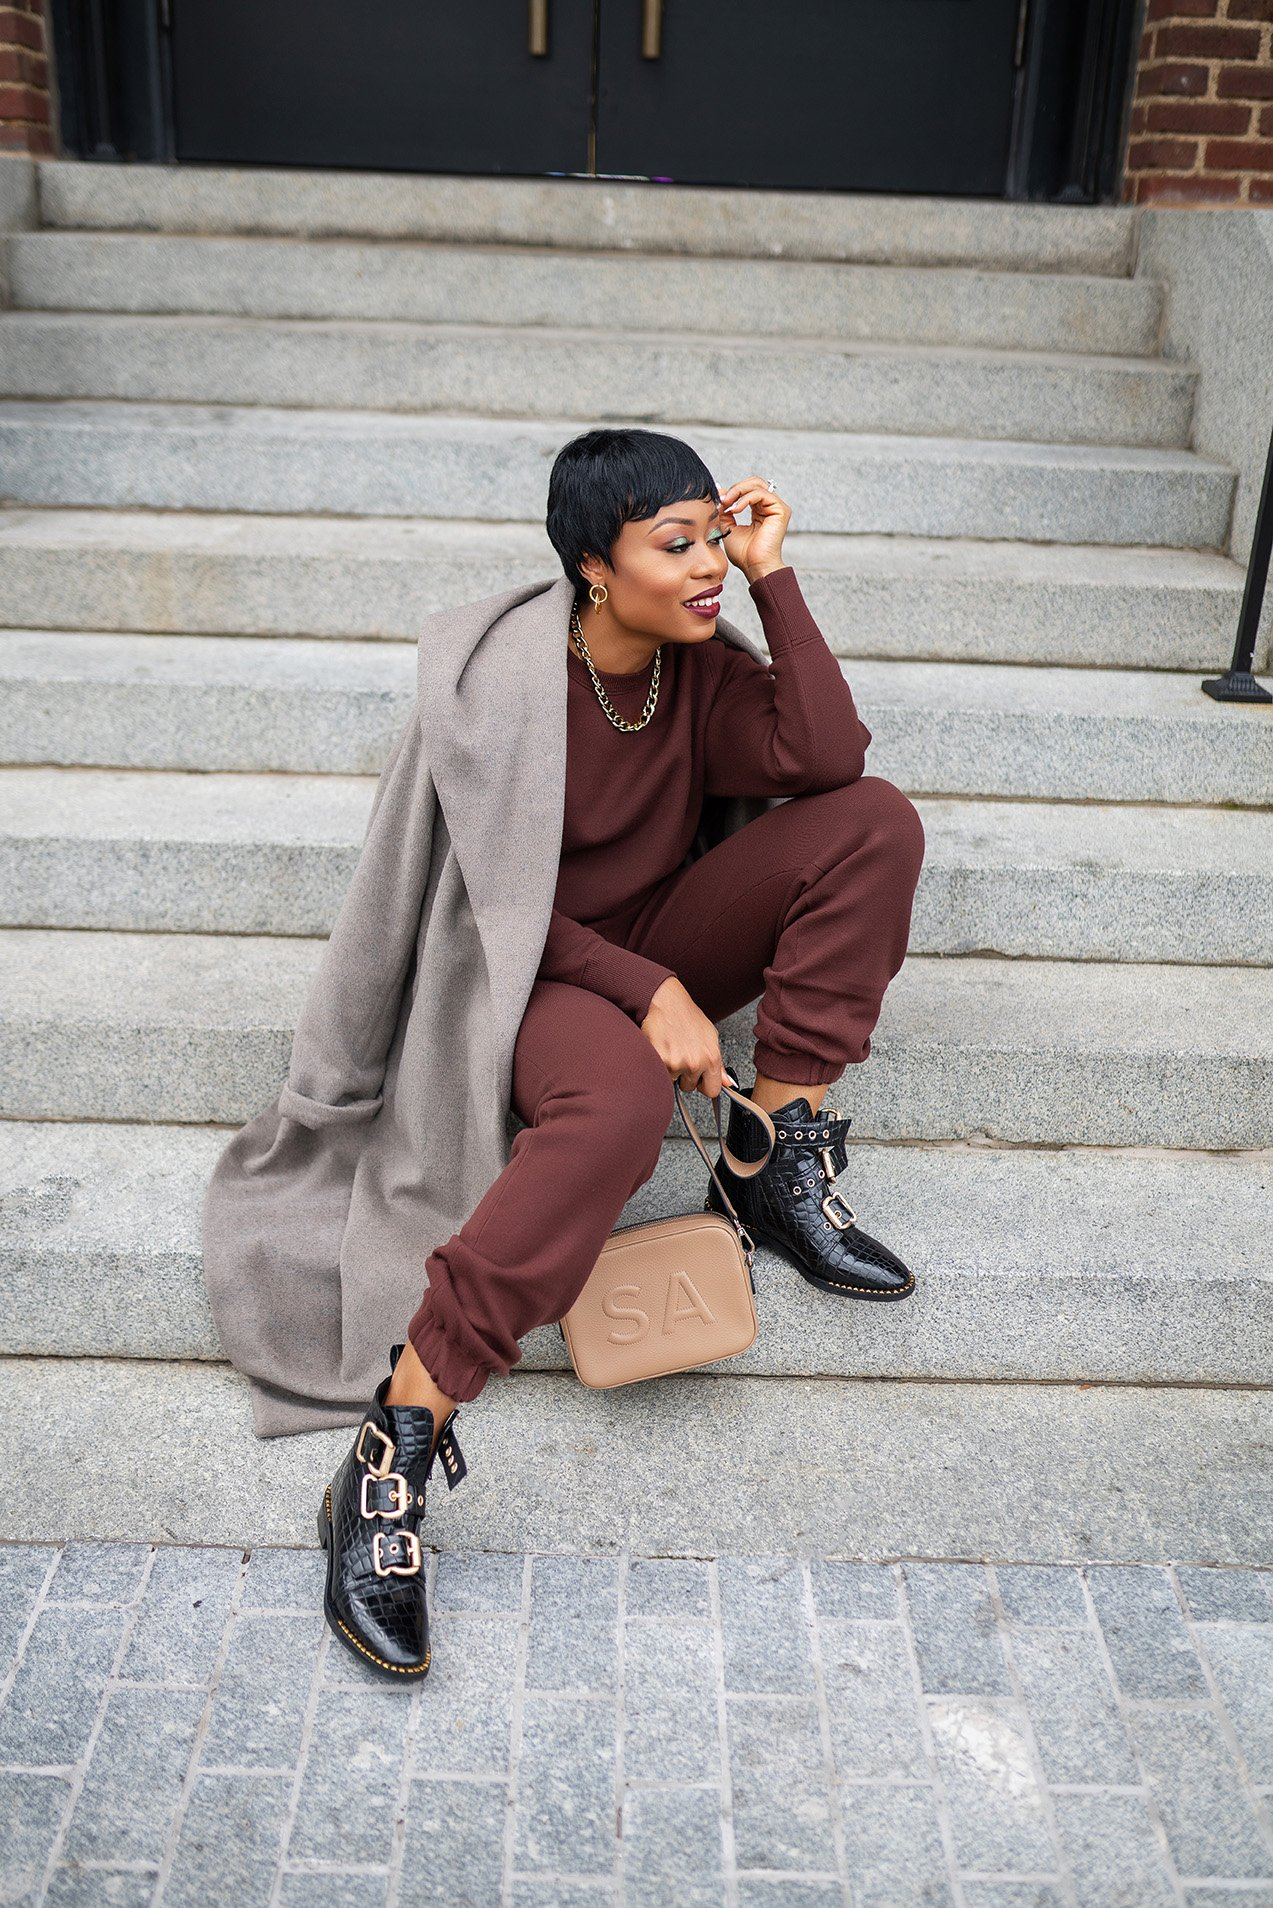 stella-adewunmi-of-jadore-fashion-blog-shares-how-to-style-Zara-sweatshirt-and-sweatpants-set-topshop-booties